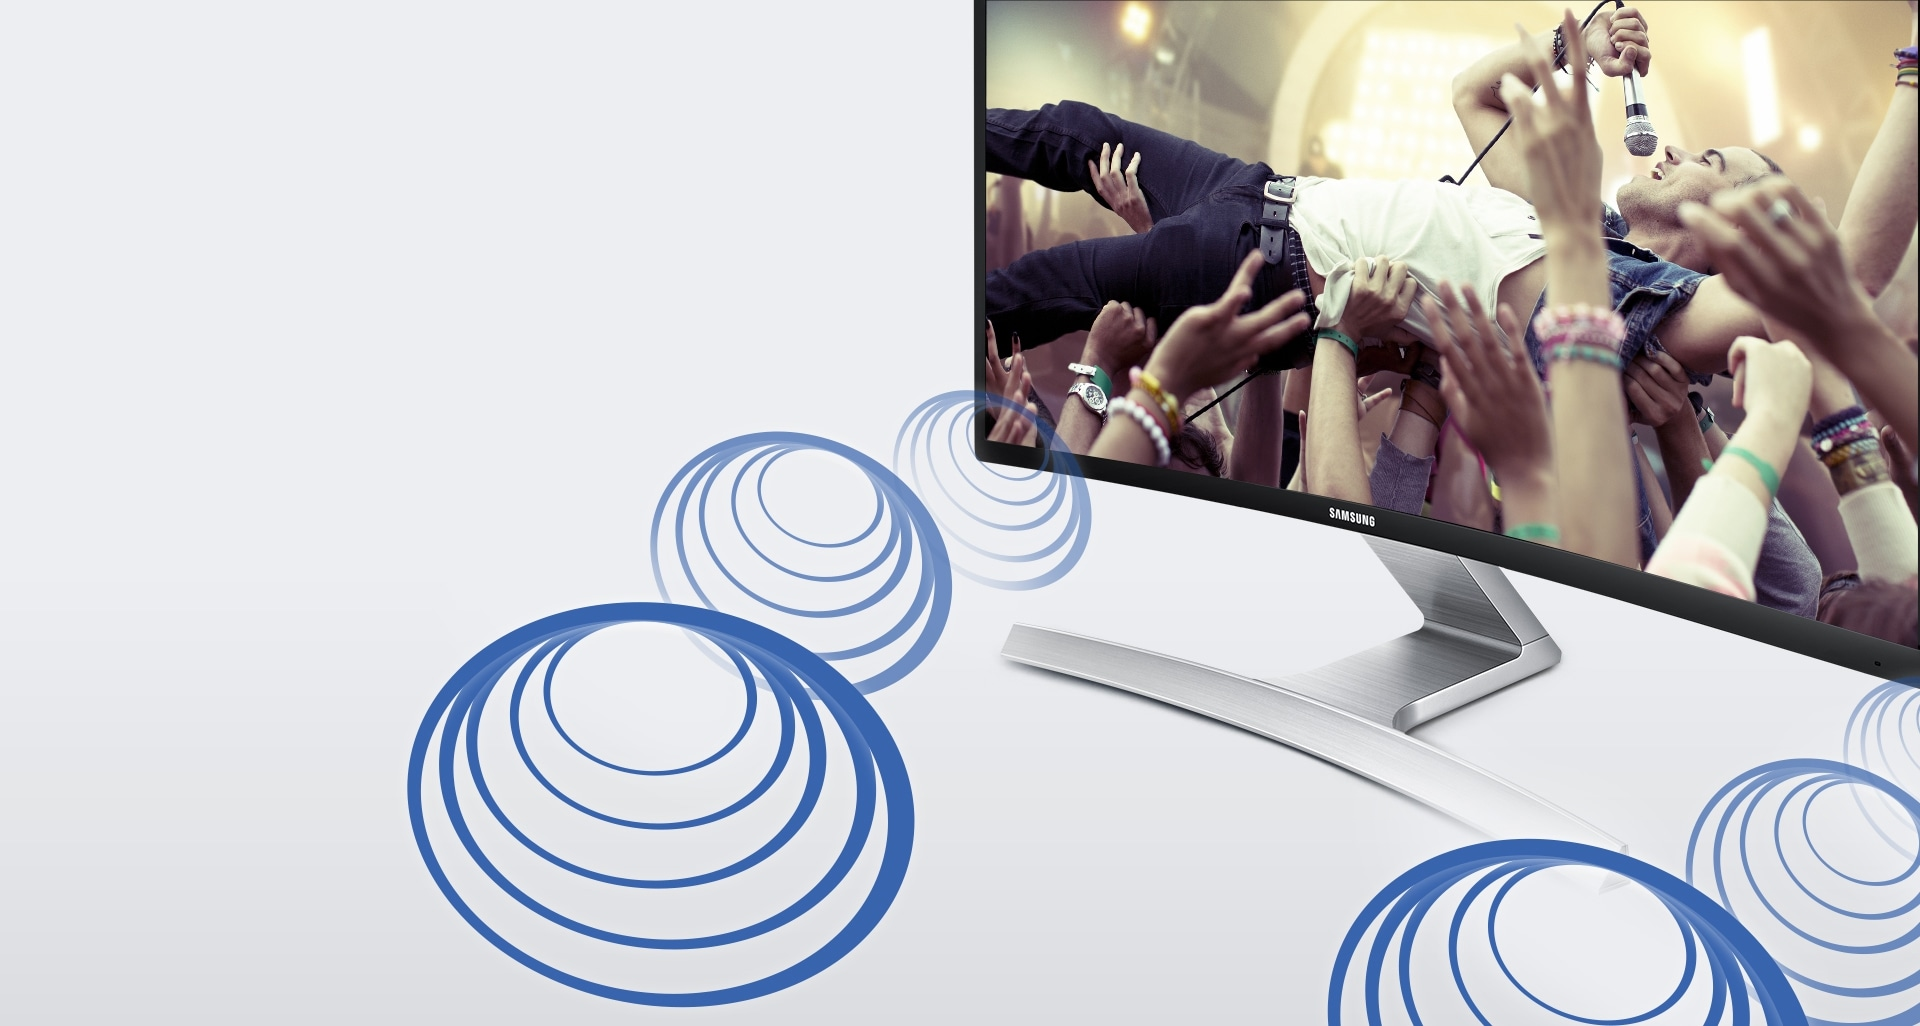 Entertainment content comes alive with stereo speakers built right into the curved screen